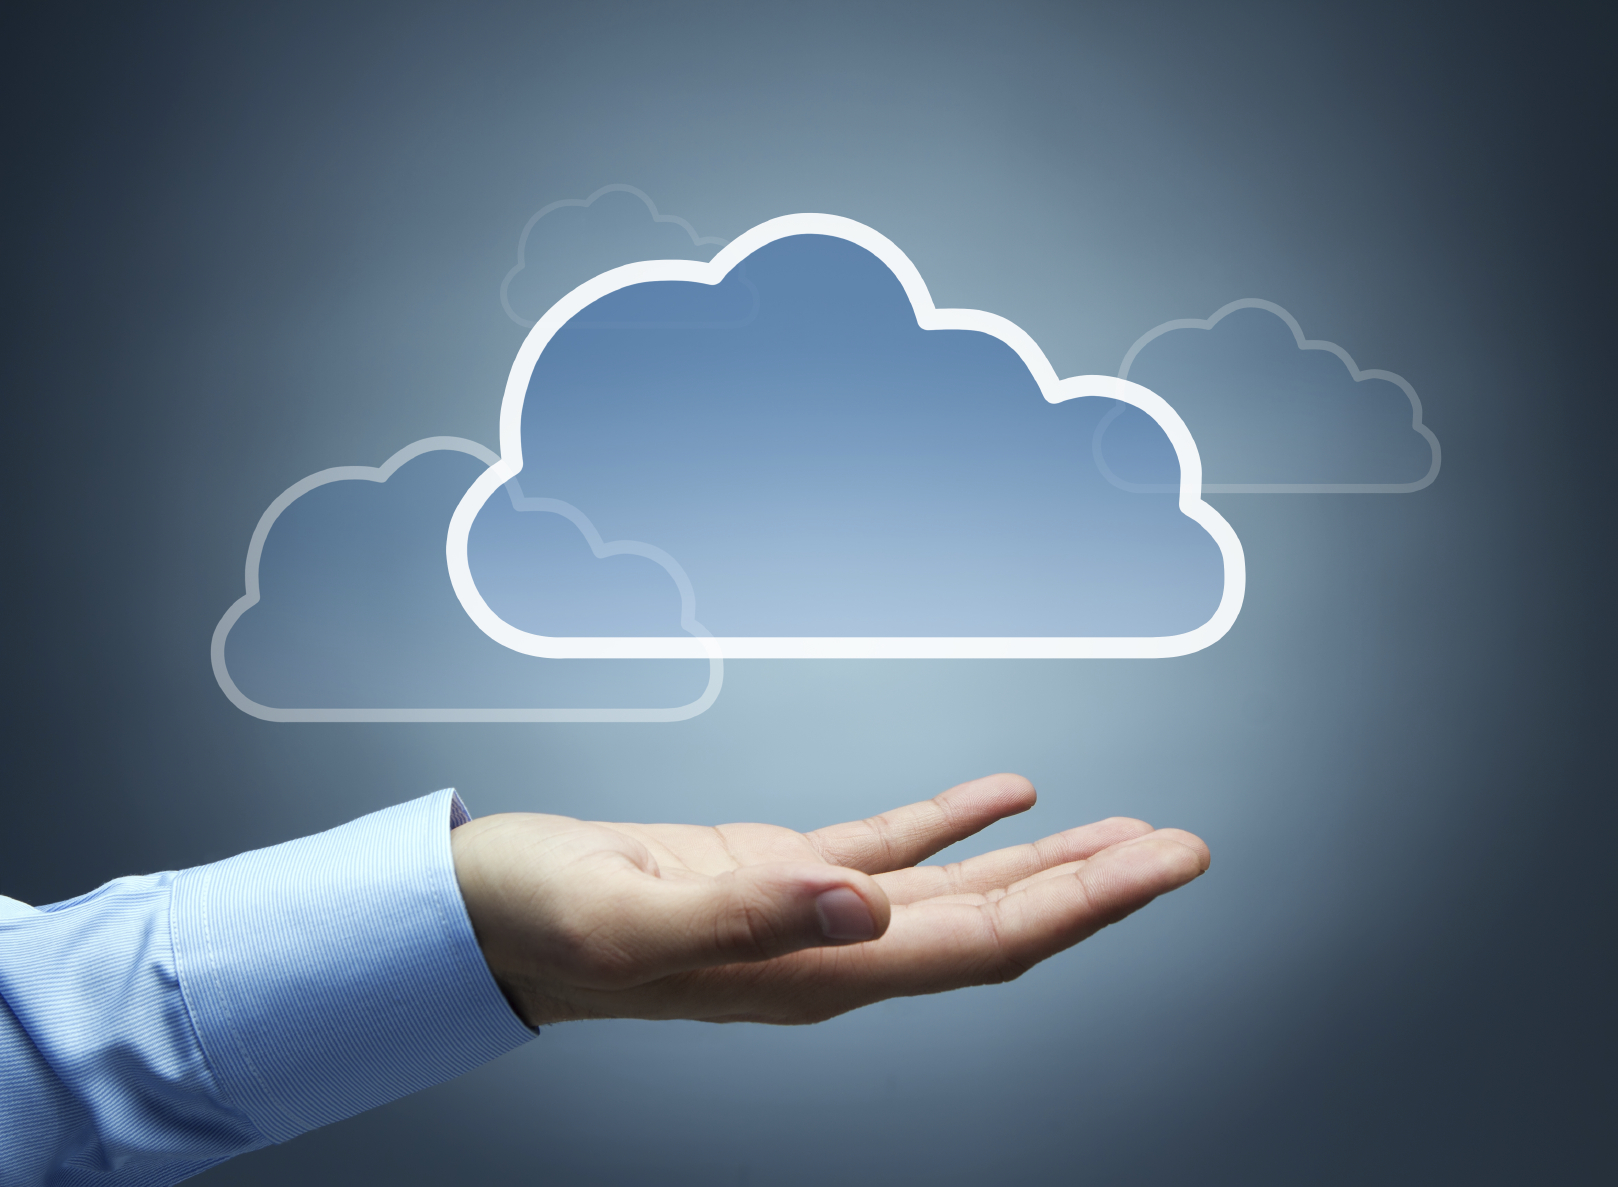 These 8 must-follow tips will keep you safe in the cloud